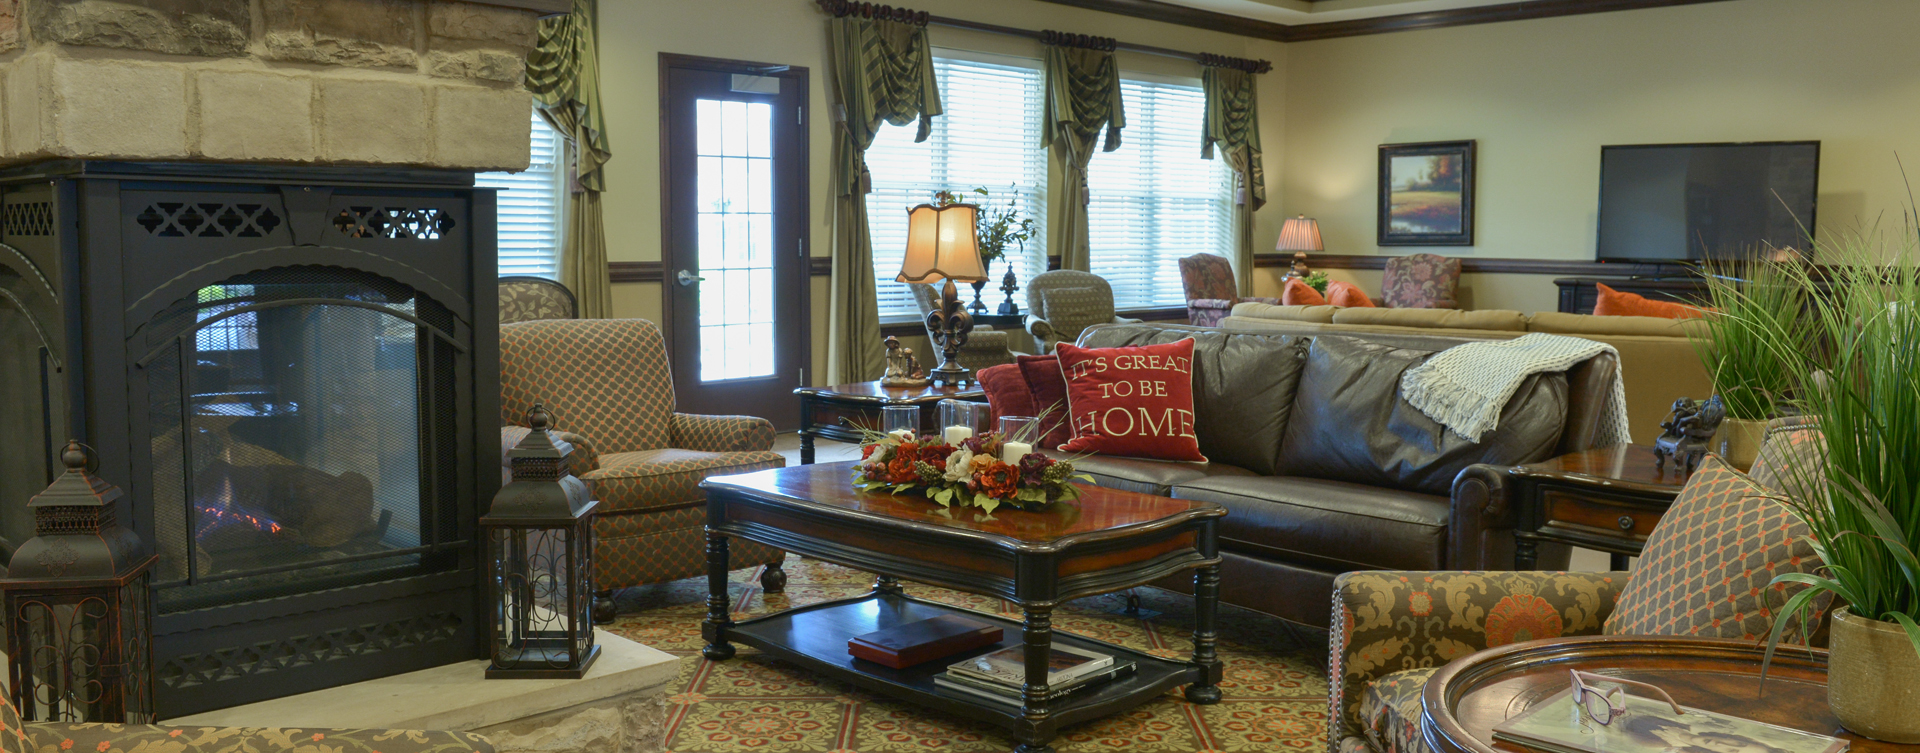 Snooze in your favorite chair in the living room at Bickford of Crown Point